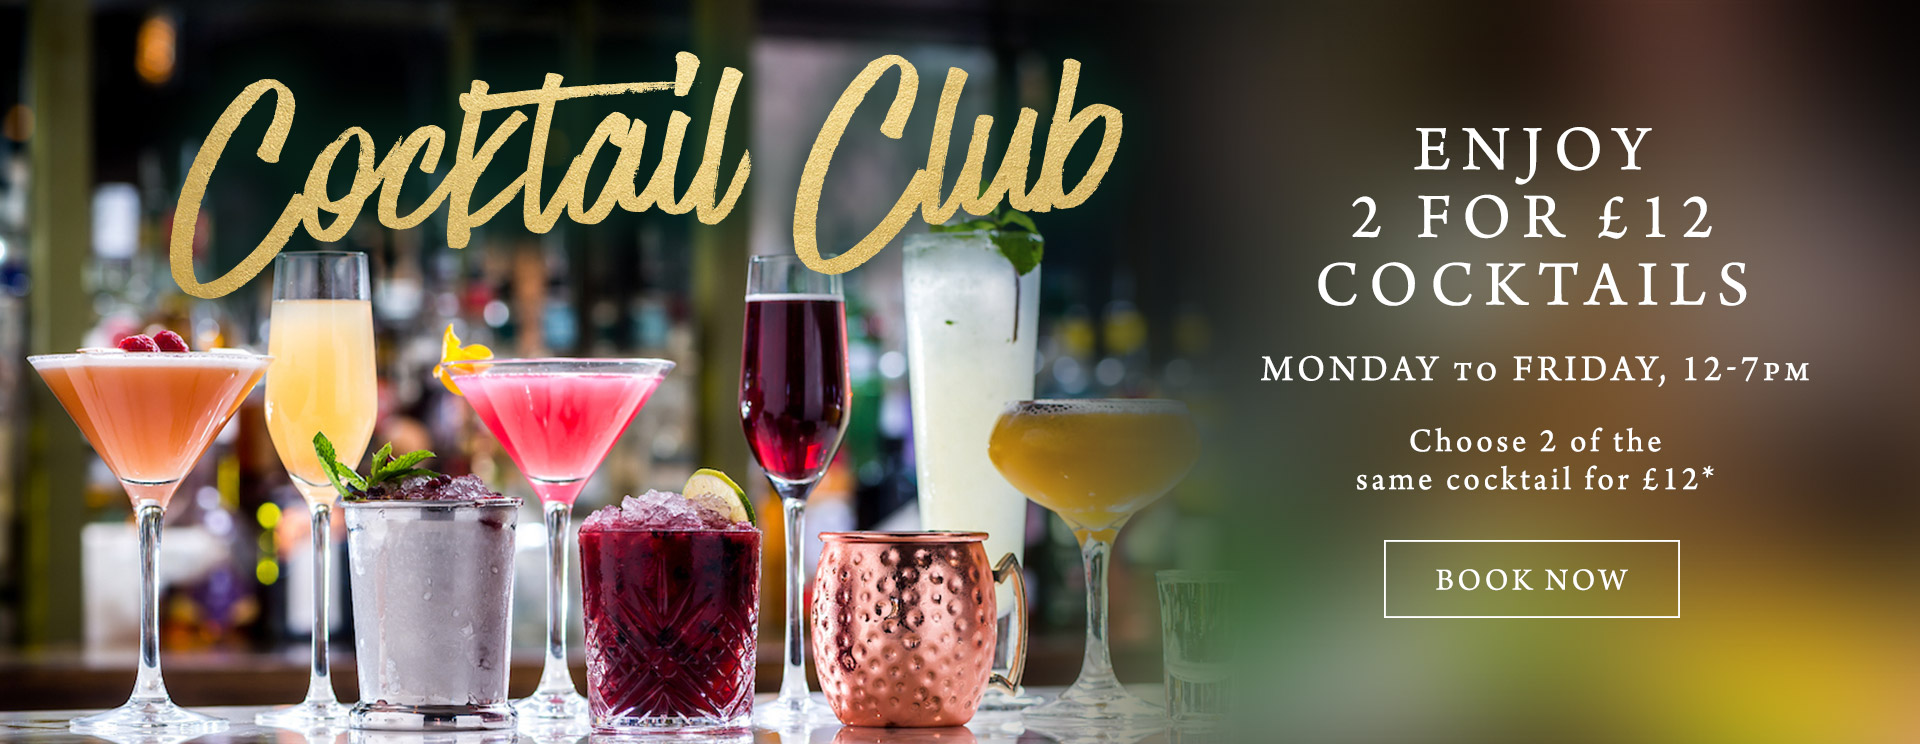 2 for £12 cocktails at The Bell Inn